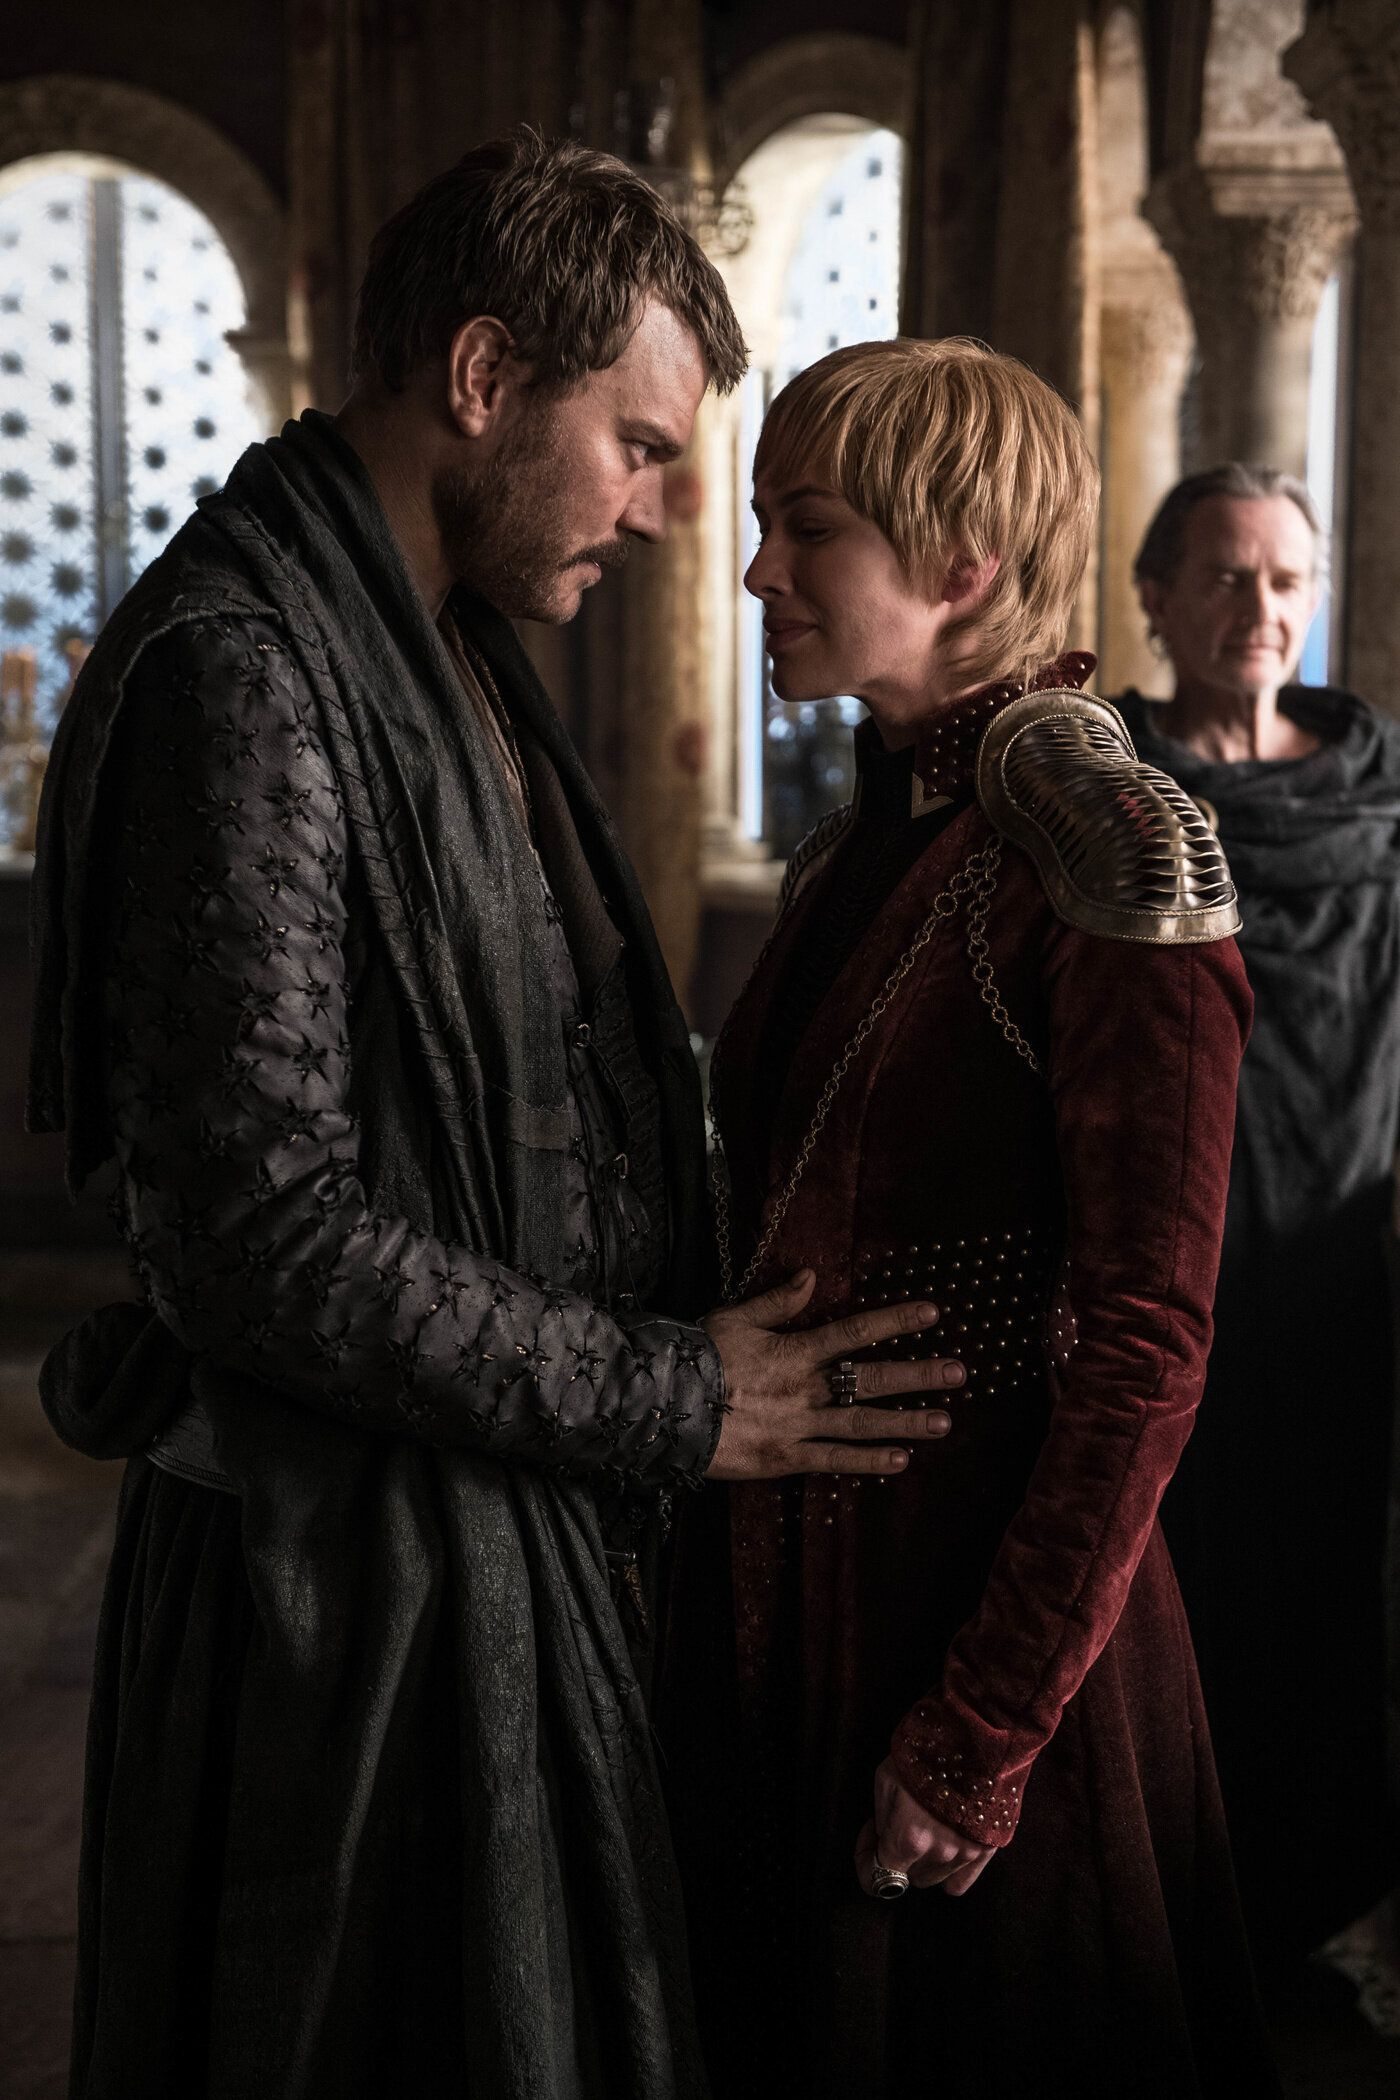 That 'Game Of Thrones' Fight May Be More Meaningful Than We